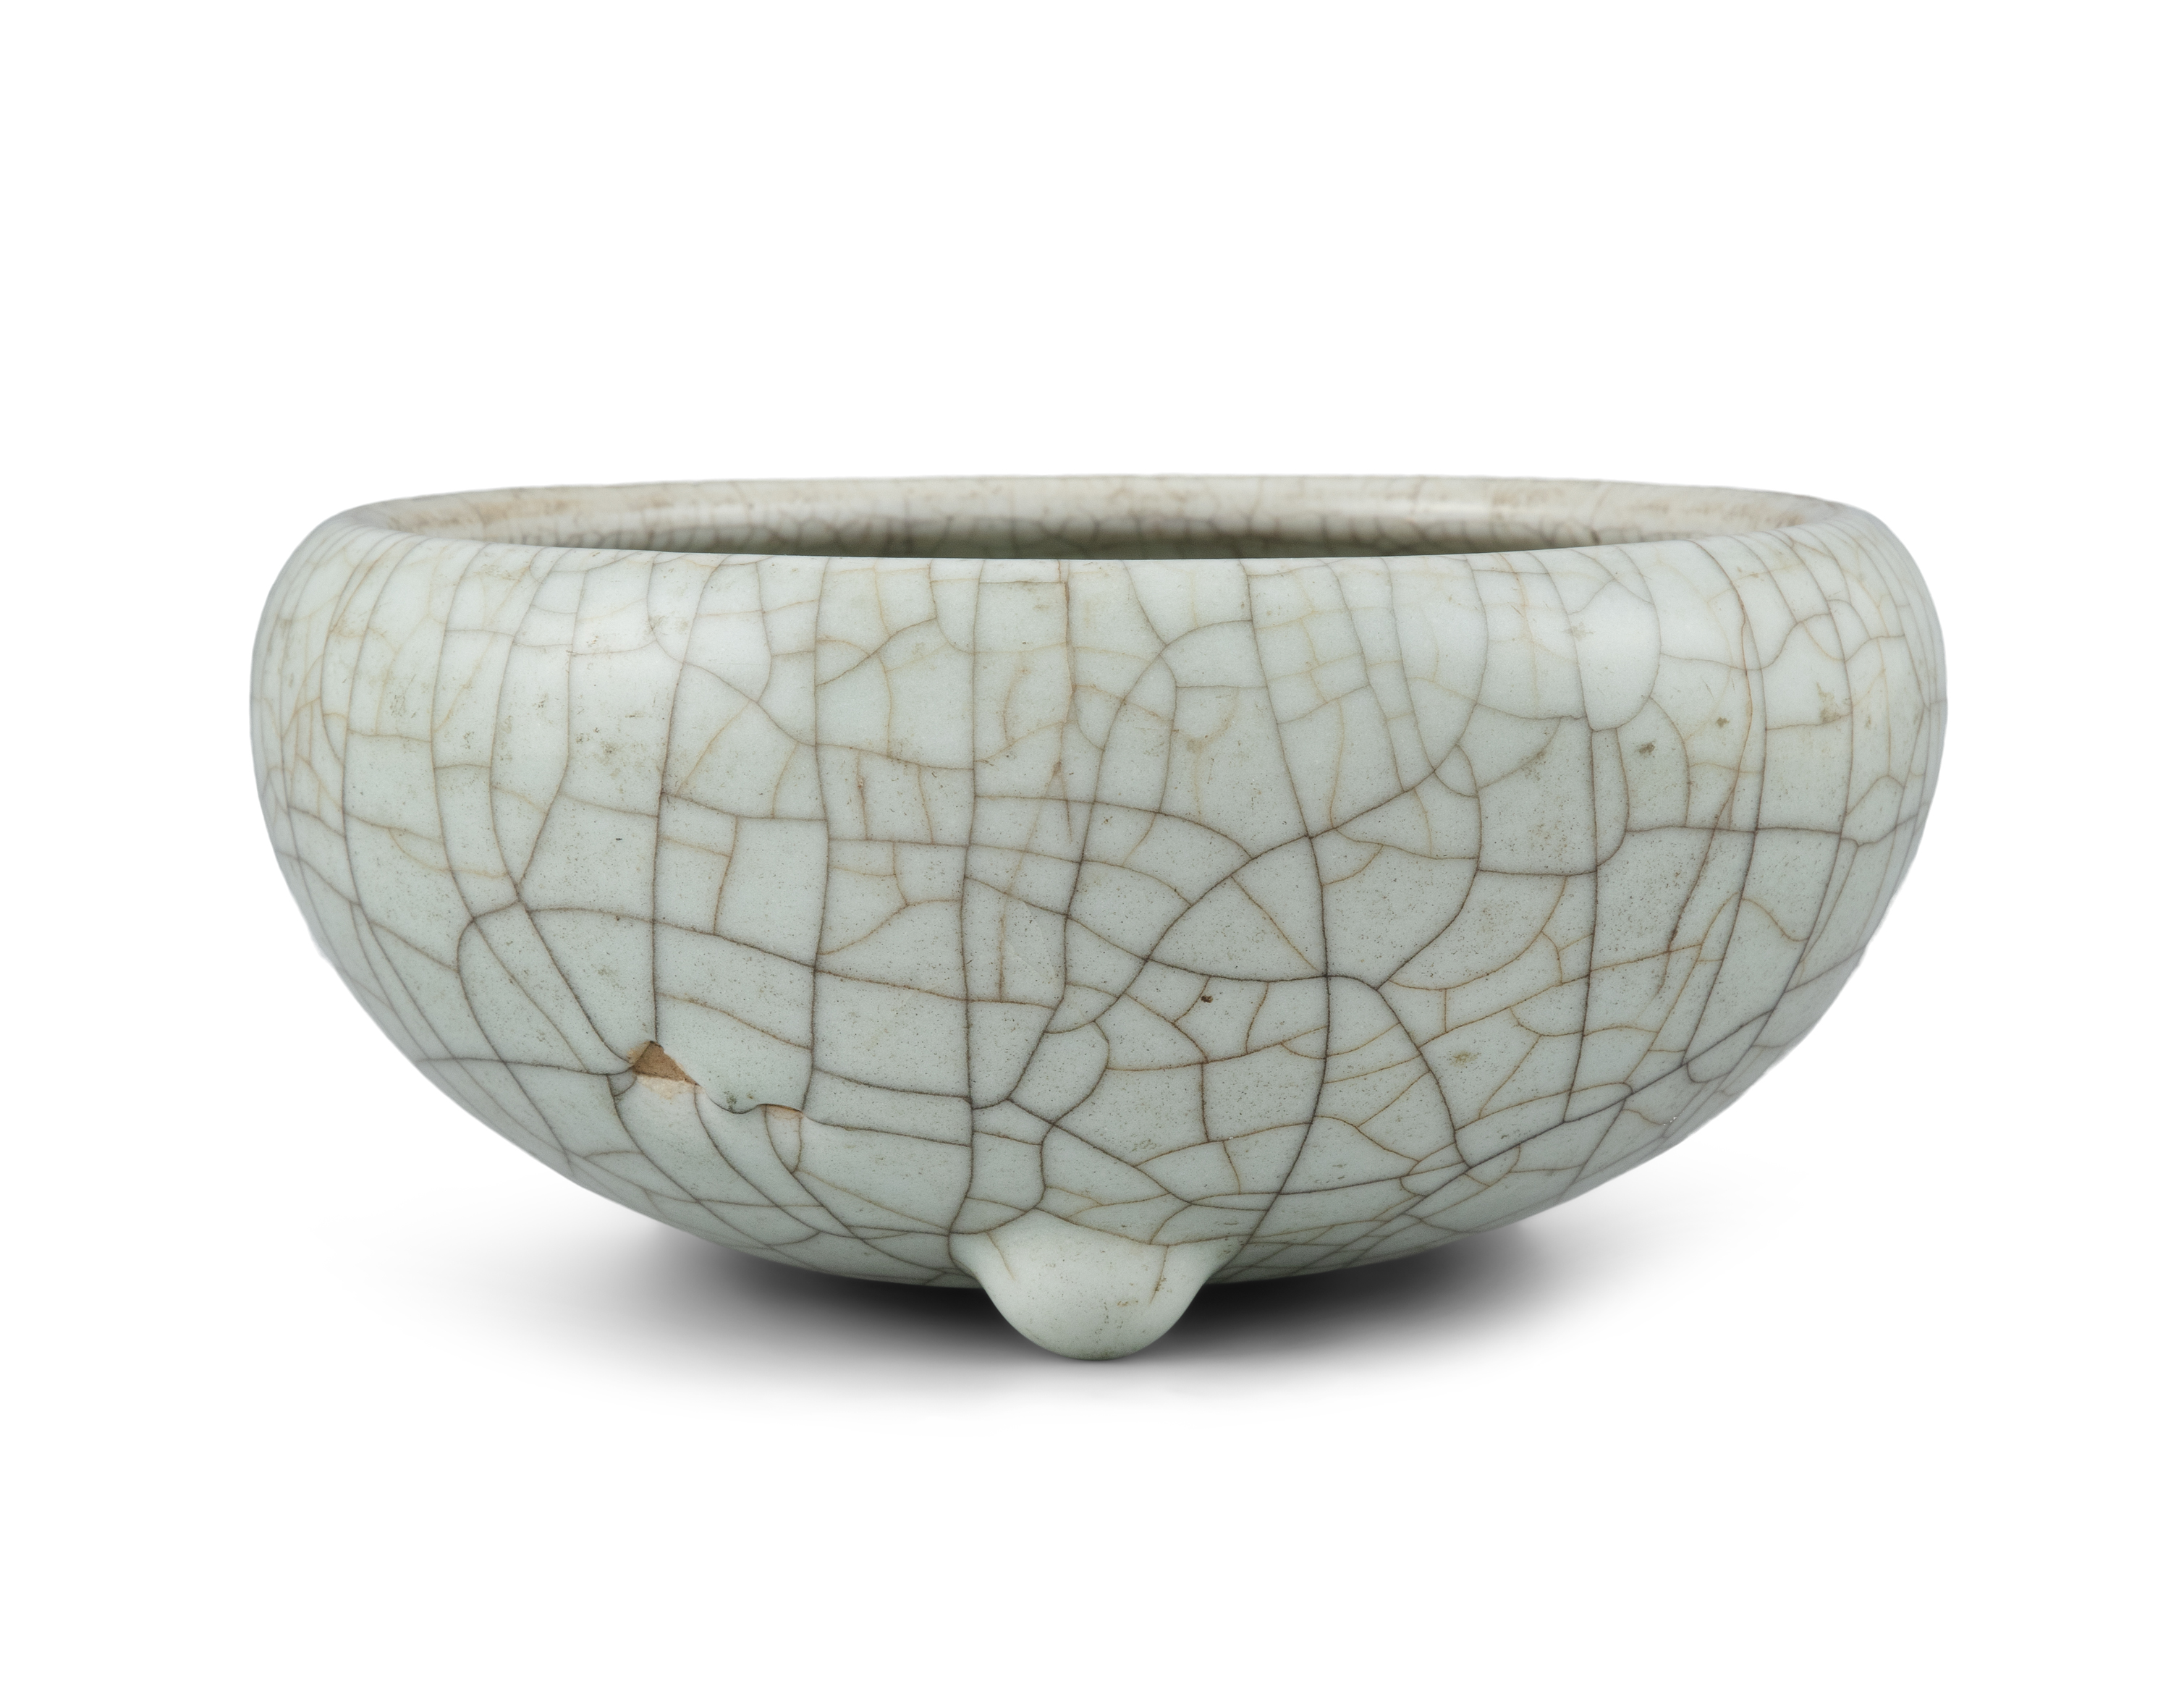 A GEYAO TYPE CRACKLED-CELADON GLAZED GLOBULAR INCENSE-BURNER China, Late Qing to Republican period - Image 2 of 11